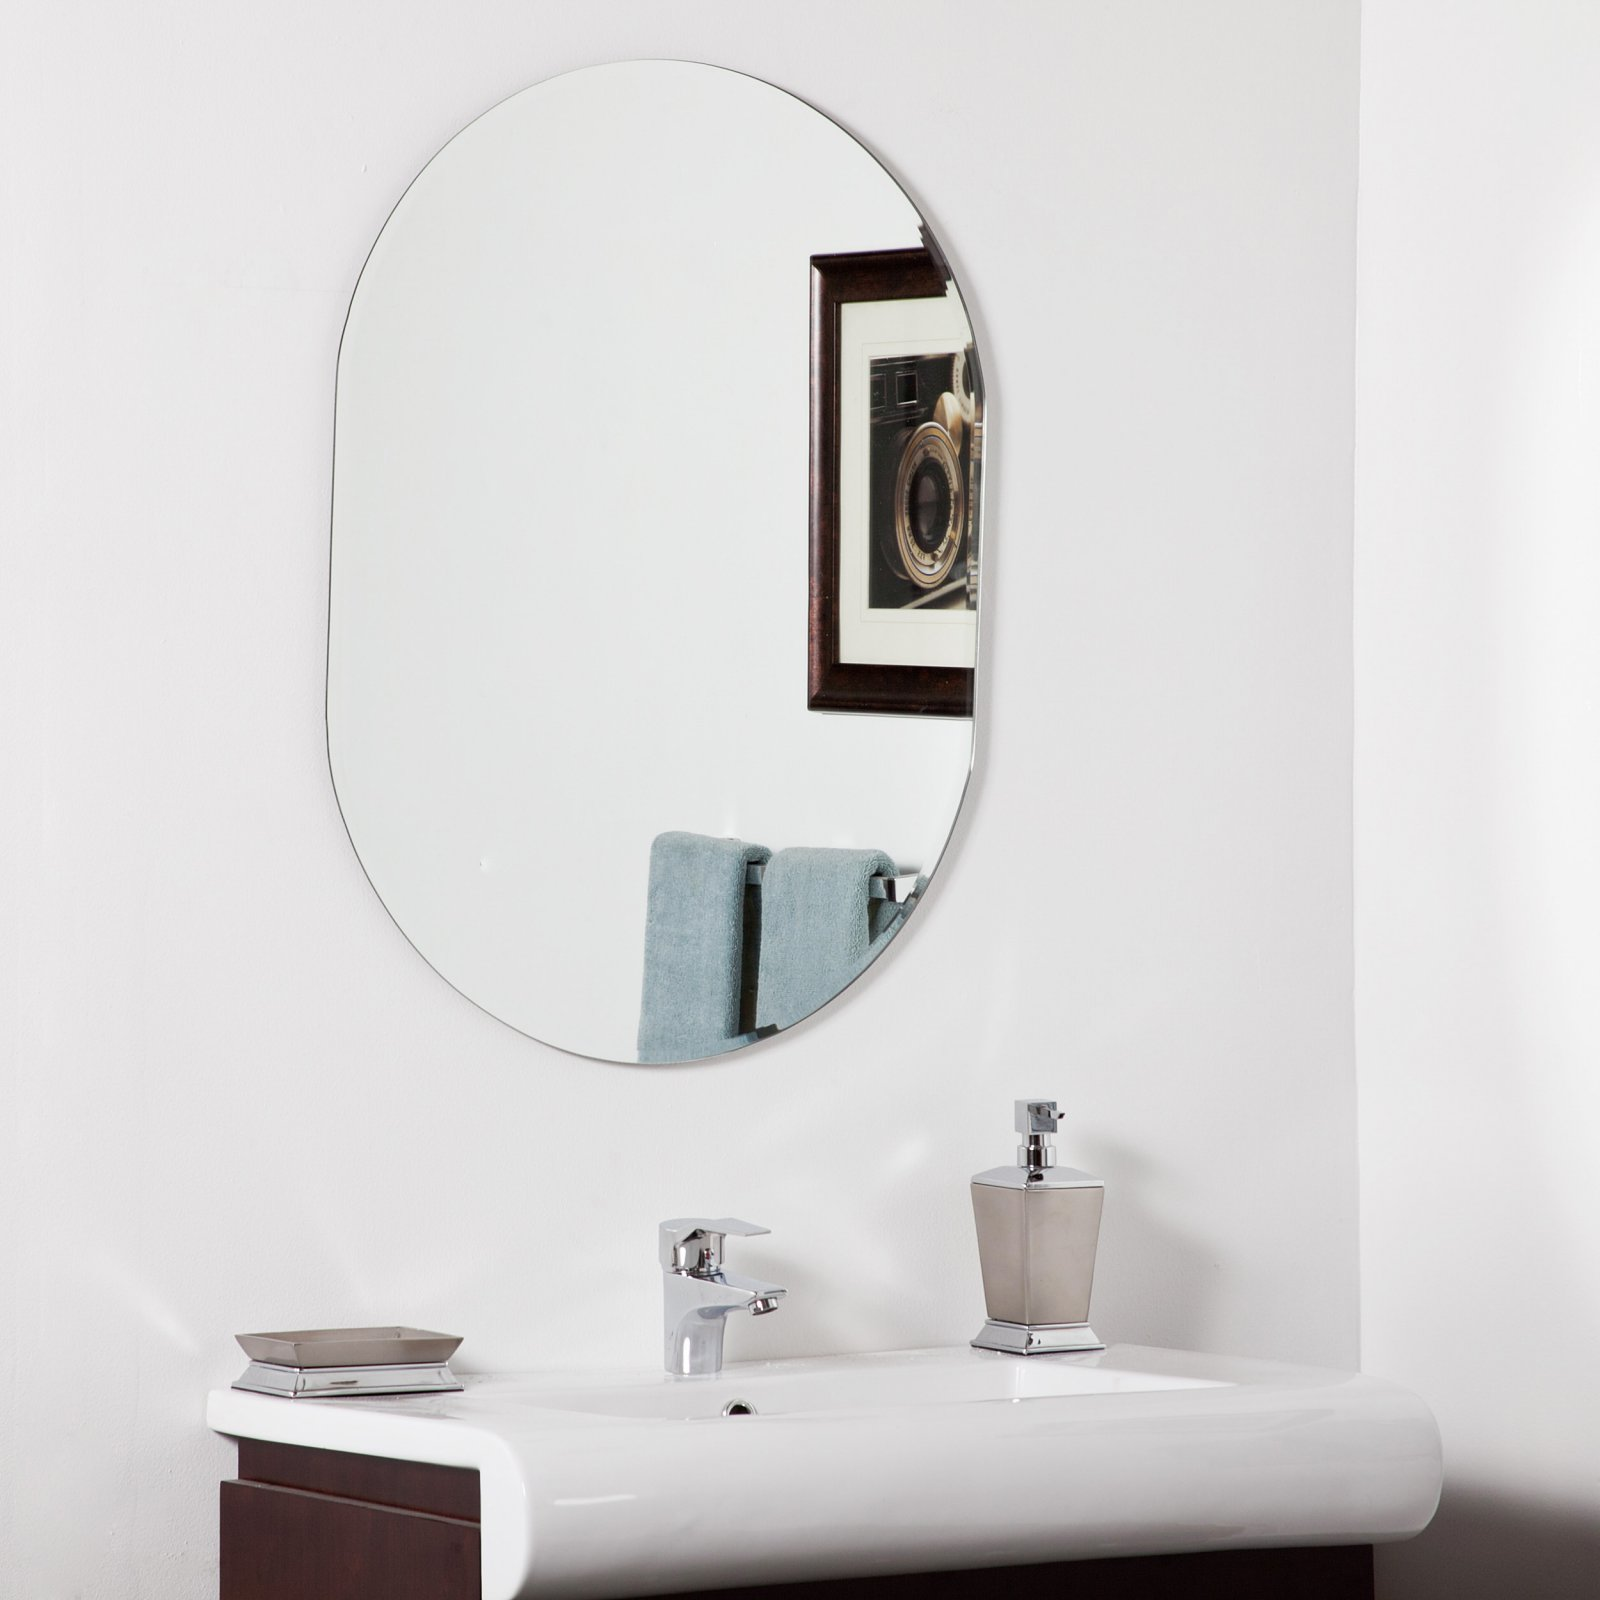 Décor Wonderland Khloe Modern Bathroom Mirror 23.6W x 31.5H in. by Decor Wonderland of US